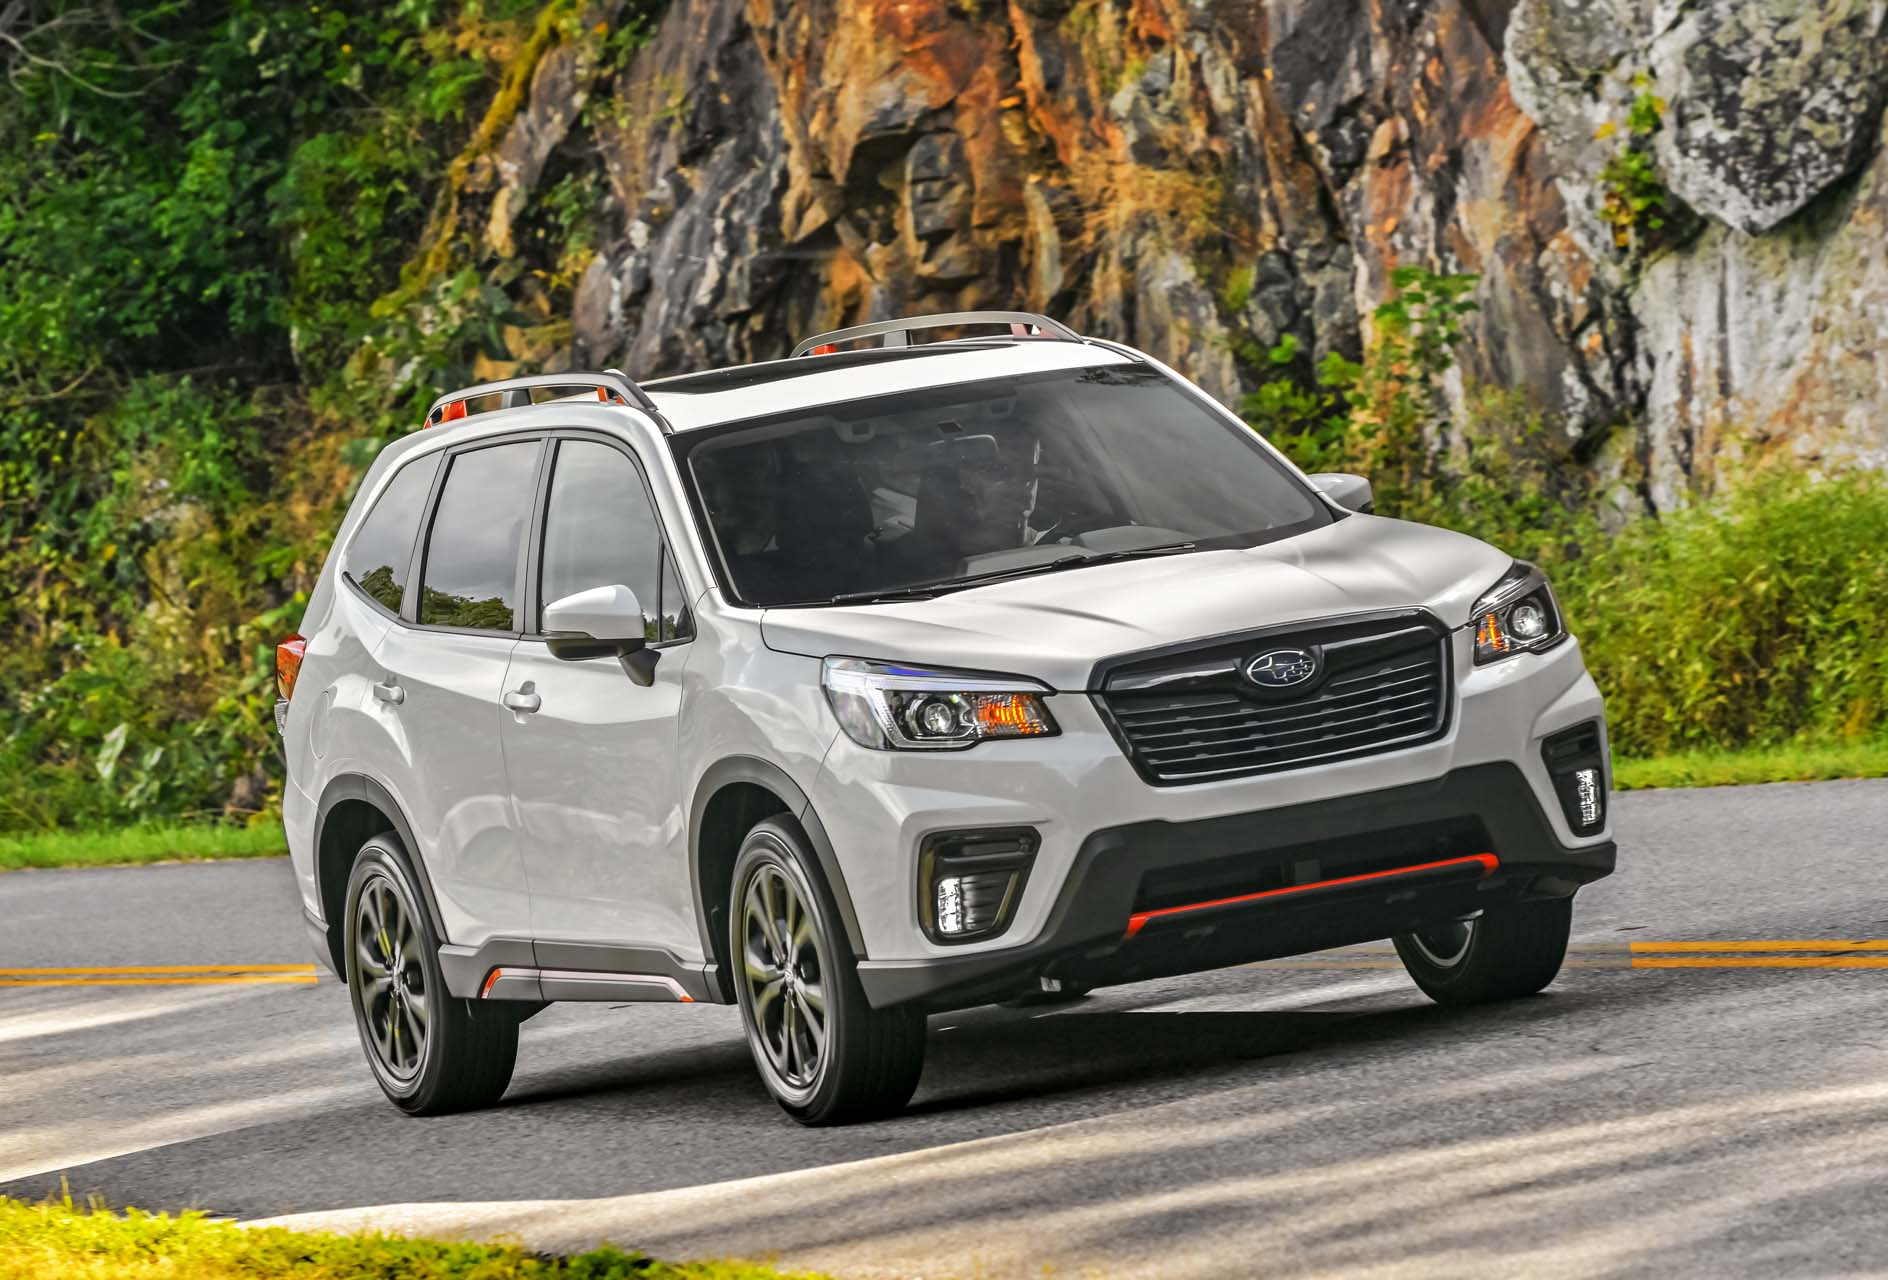 2019 Subaru Forester Sport driven Fords selfdriving